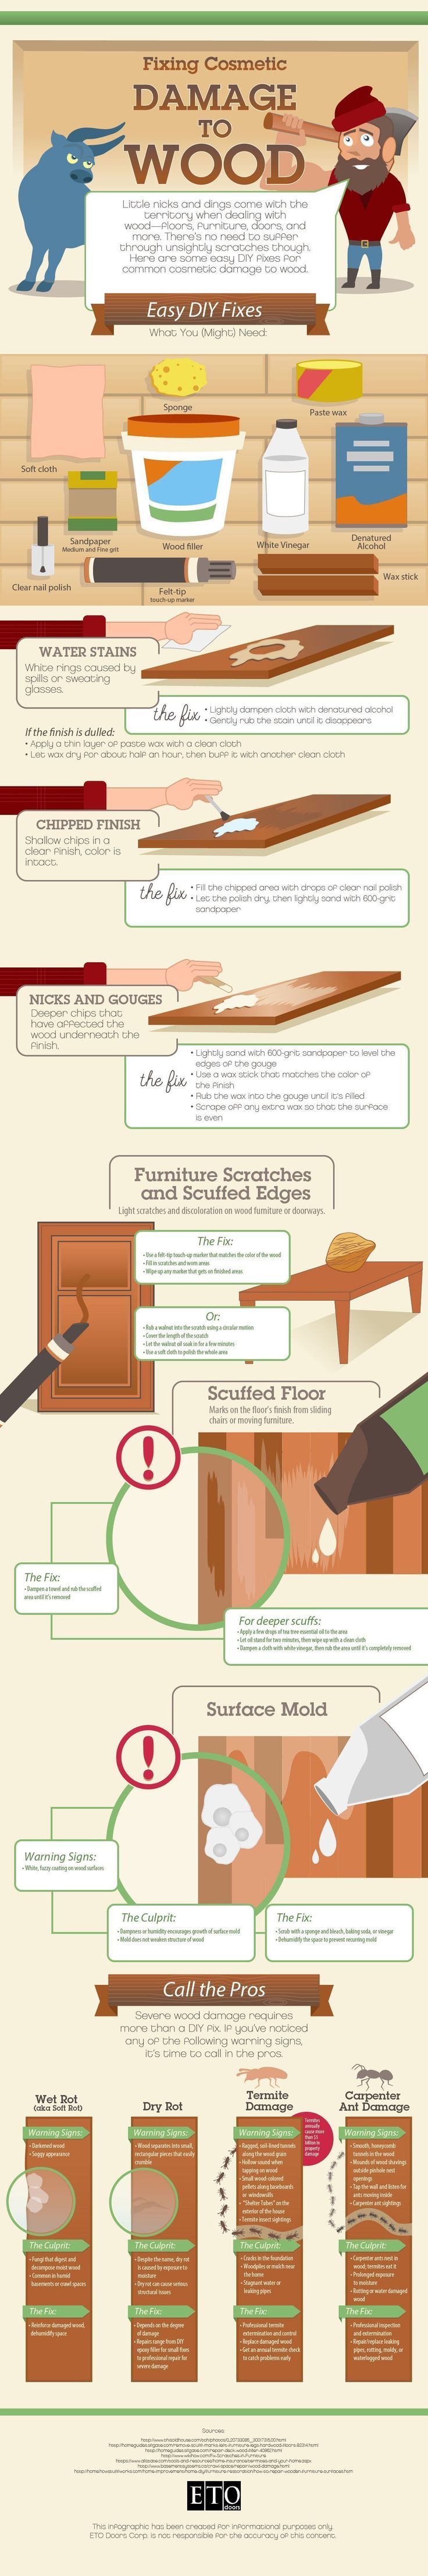 Fixing Cosmetic Damage to Wood #Infographic #DIY #HomeImprovement #woodworkingbench #AmazingWoodworkingShops #woodworkinginfographic #woodworkingtips